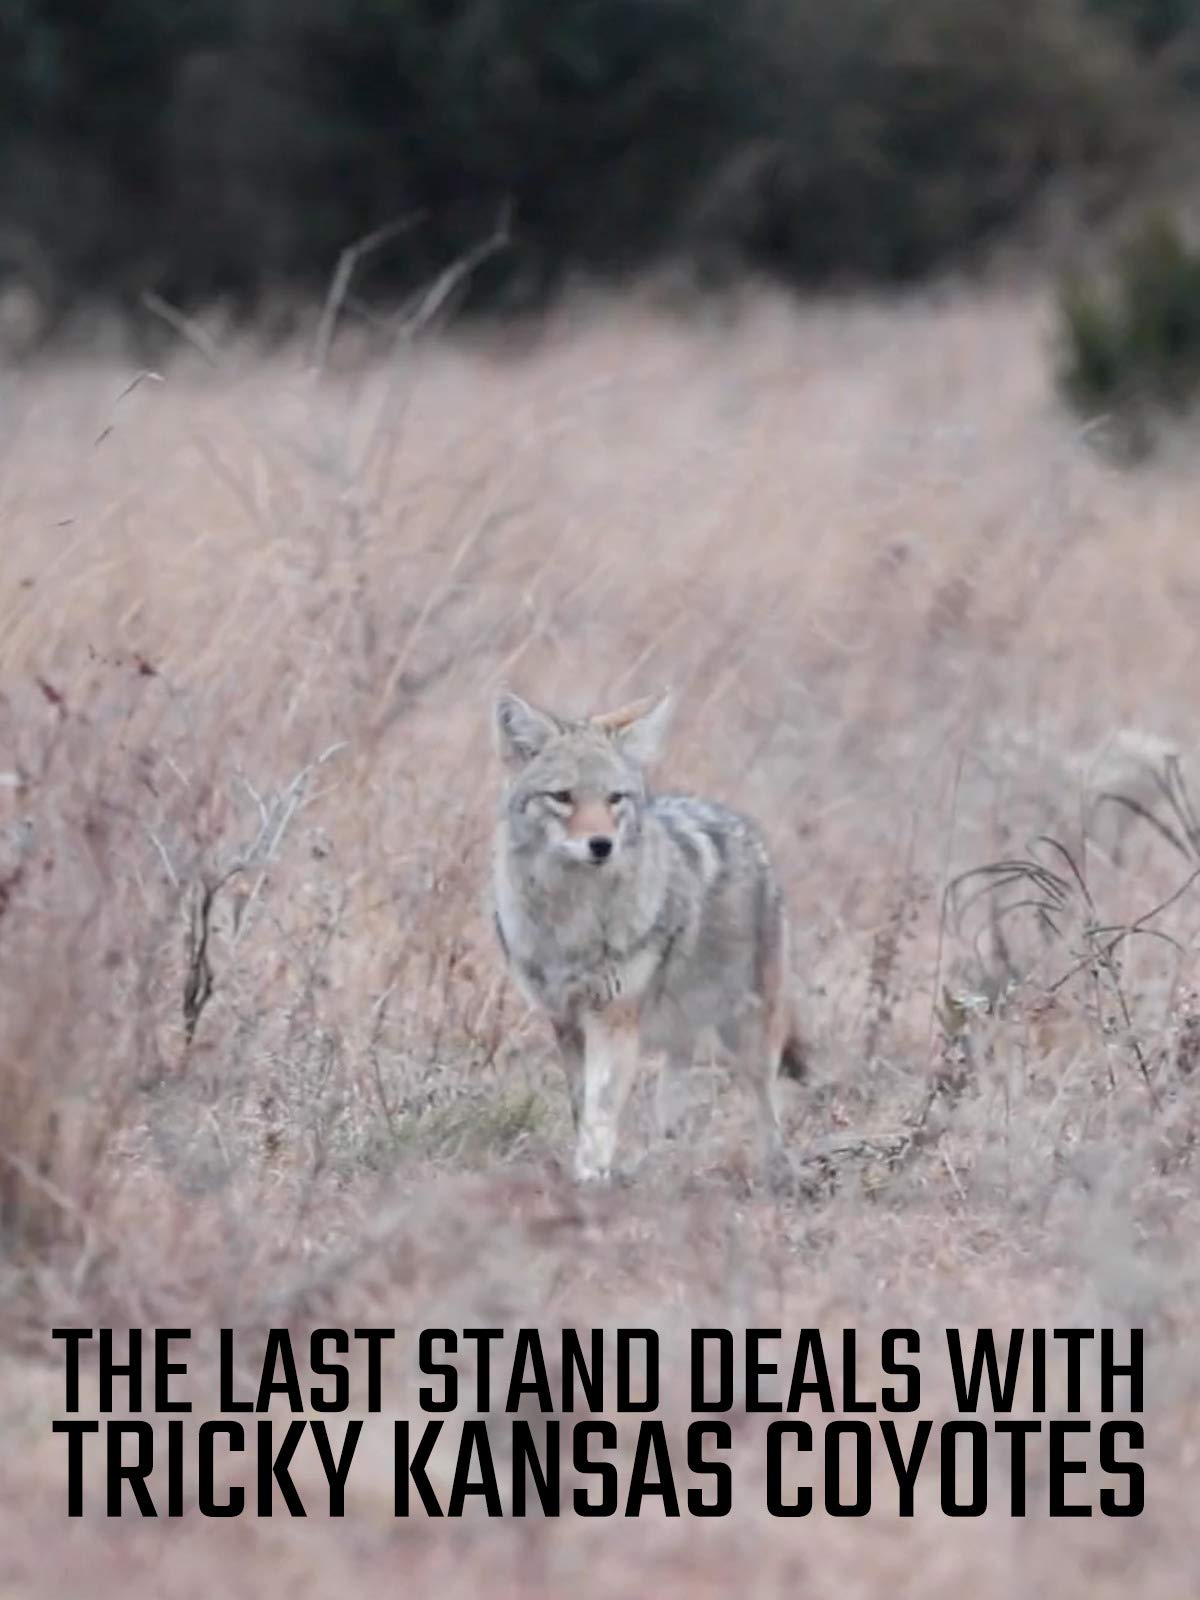 The Last Stand Season Deals With Tricky Kansas Coyotes